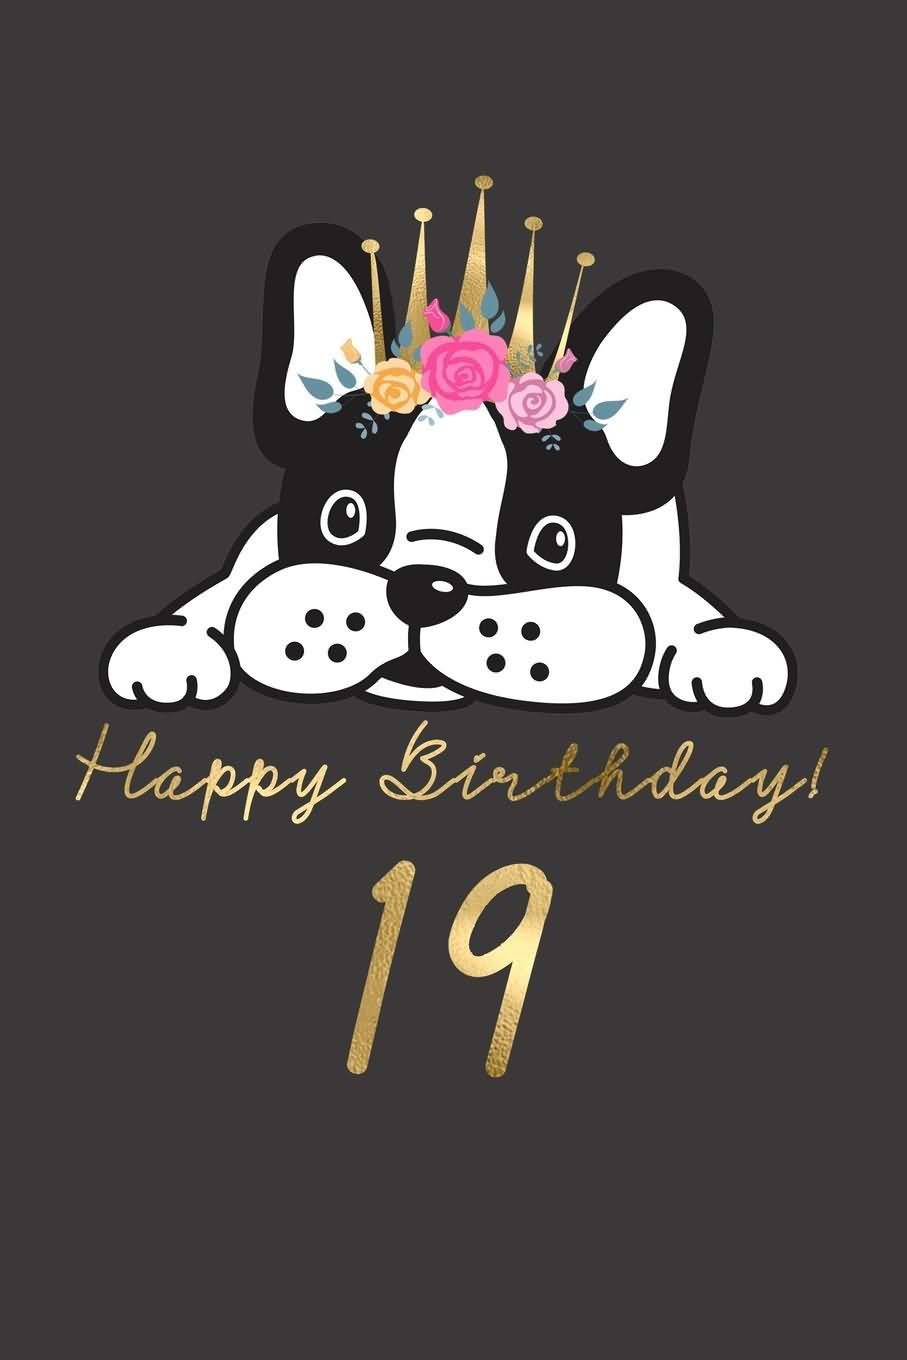 Beautiful Happy 19th Birthday Image For Sharing